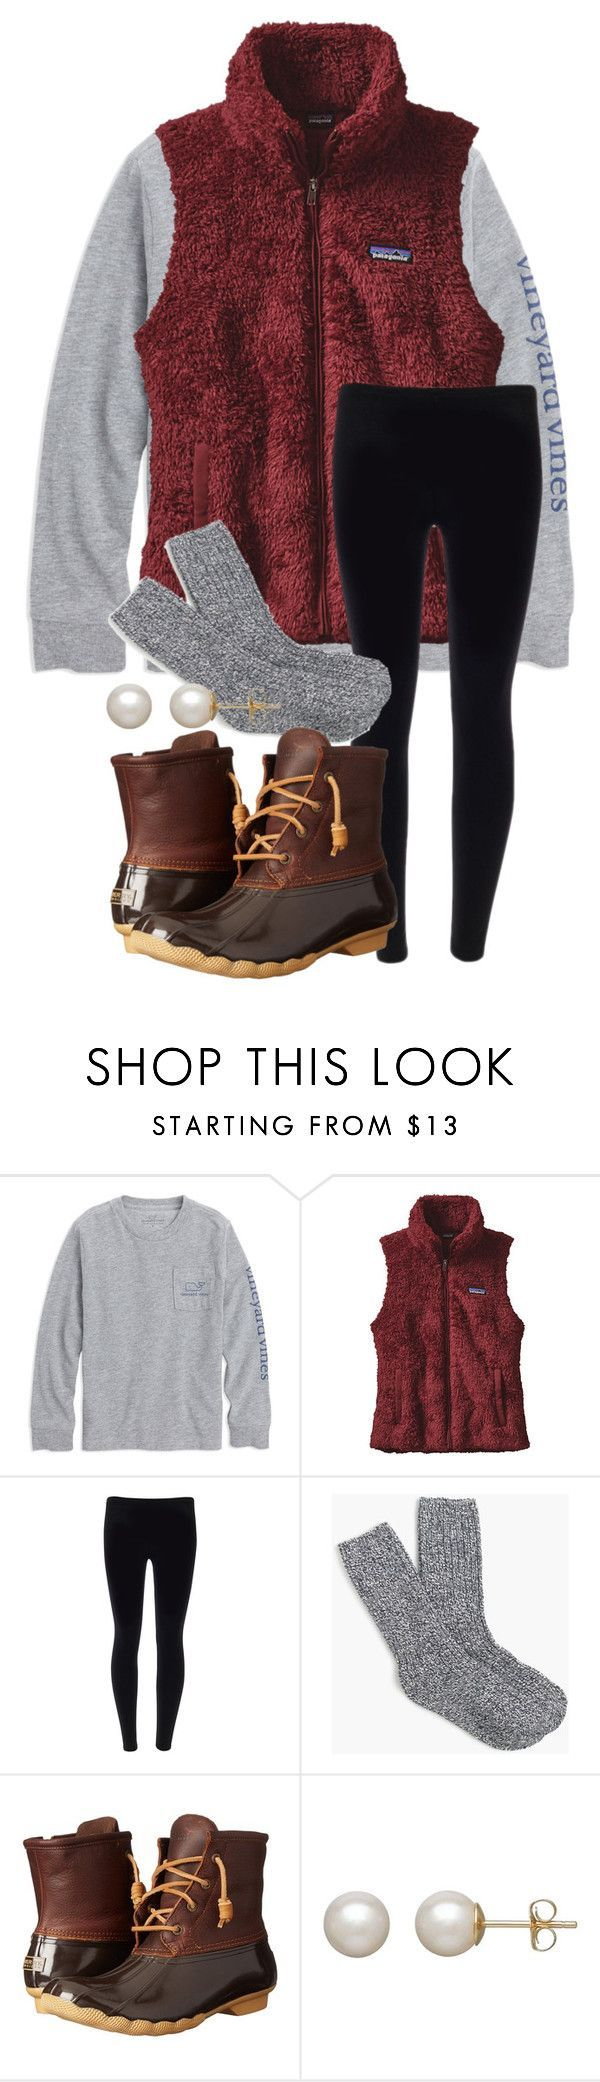 """Patagonia vests or pullovers?? your answer in comments"" by parker3202 ❤️ liked on Polyvore featuring Patagonia, J.Crew, Sperry and Honora"